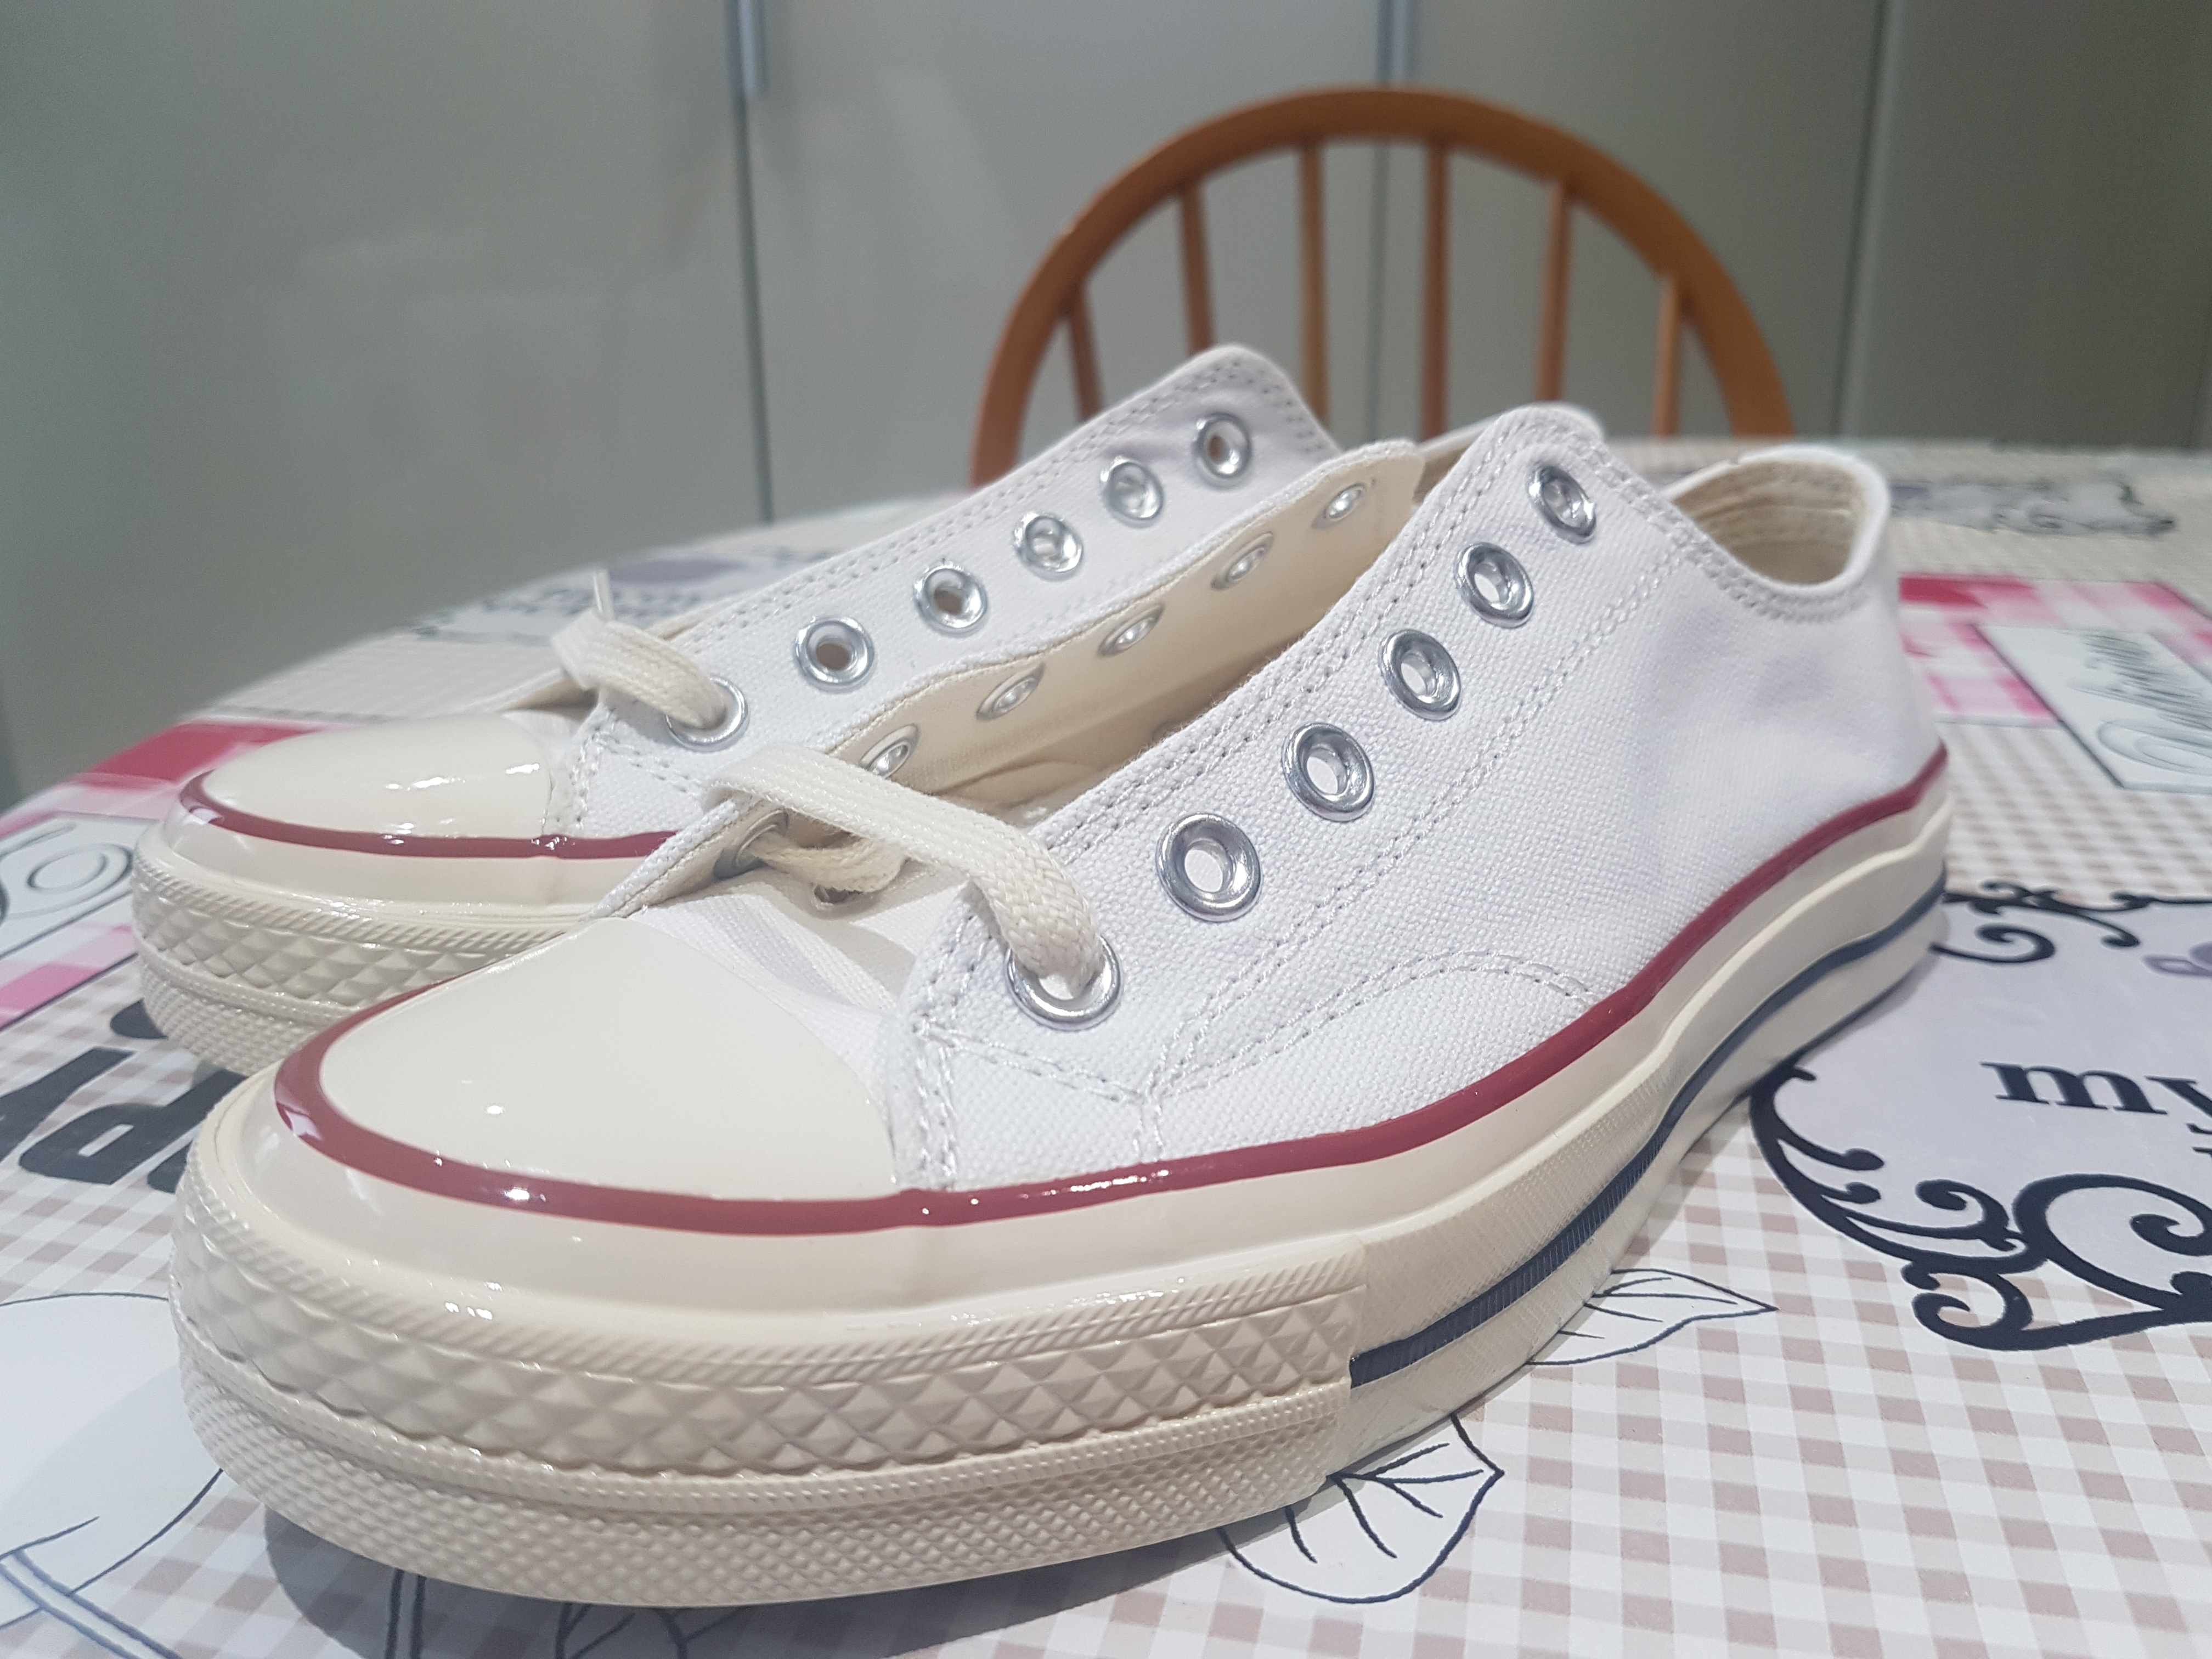 Converses All Star authentiques.